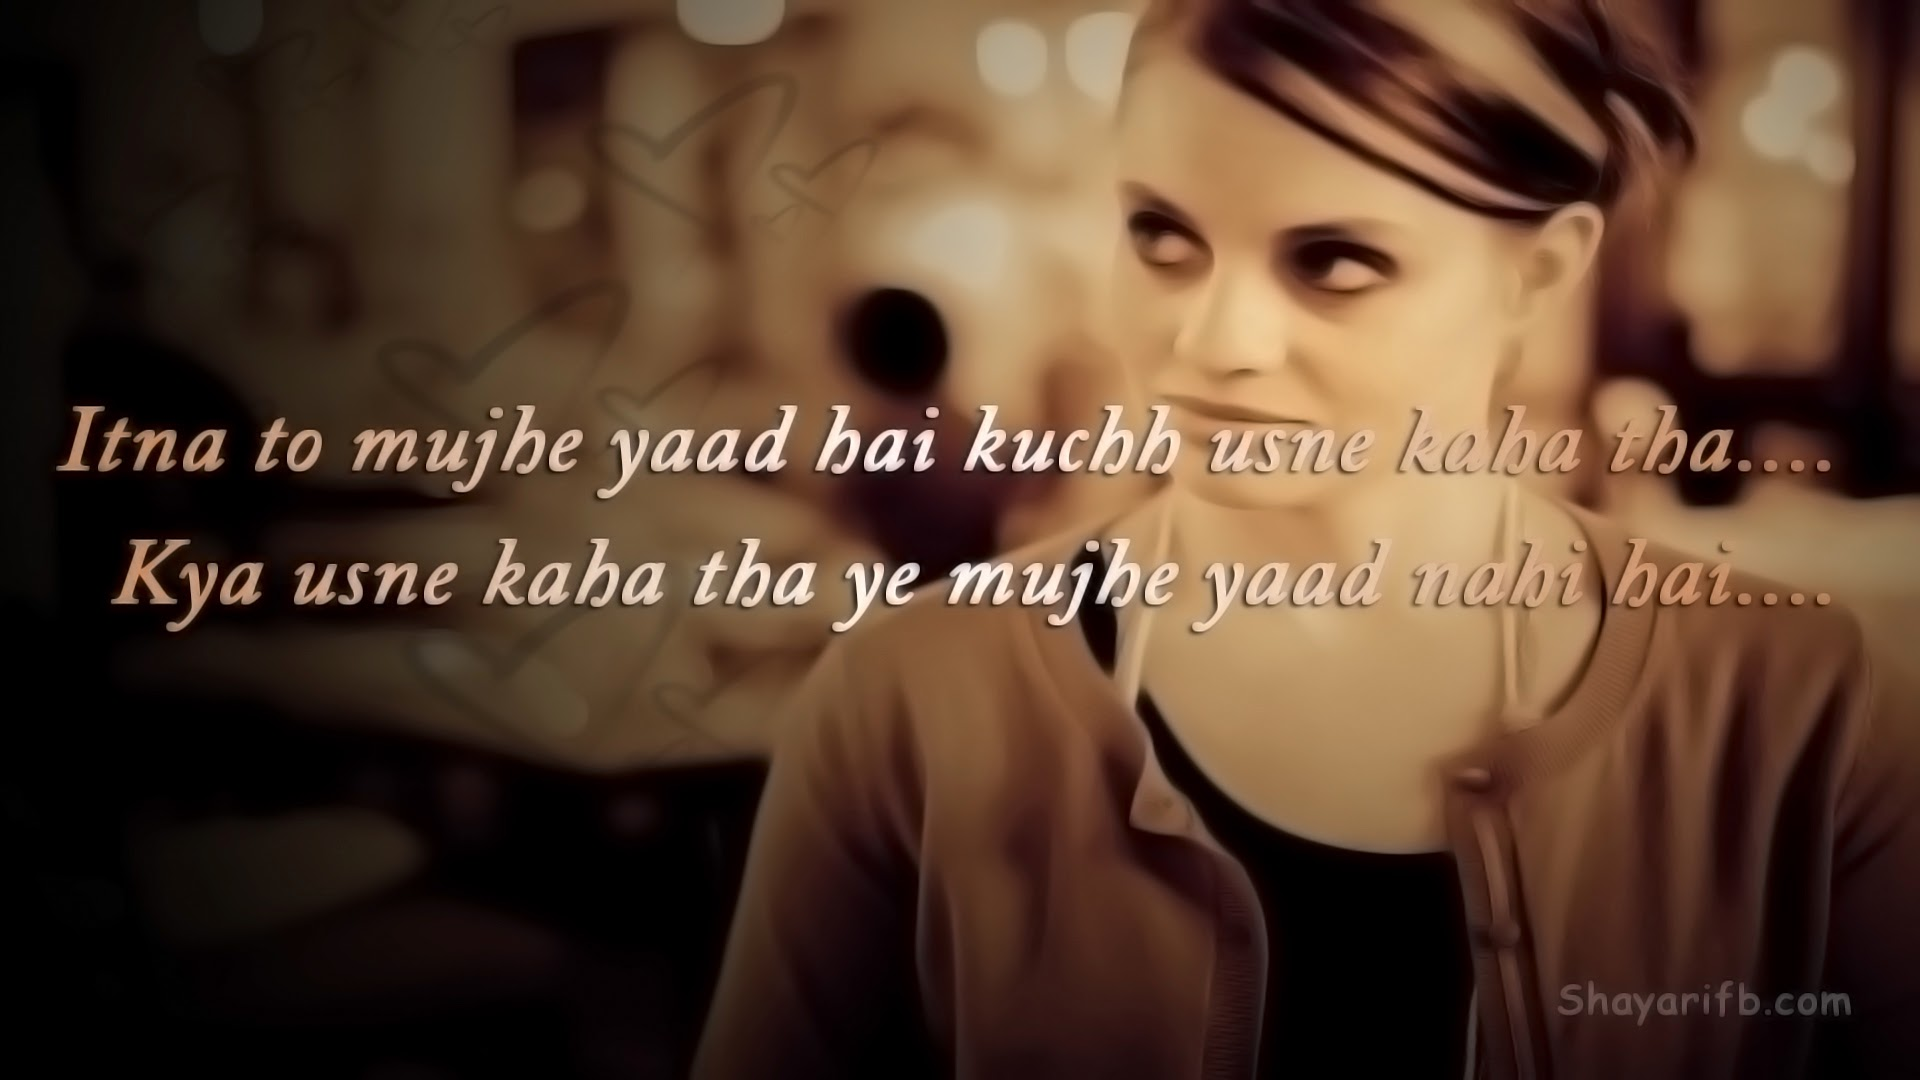 Beautiful Hindi Shayari for True Love Wallpapers